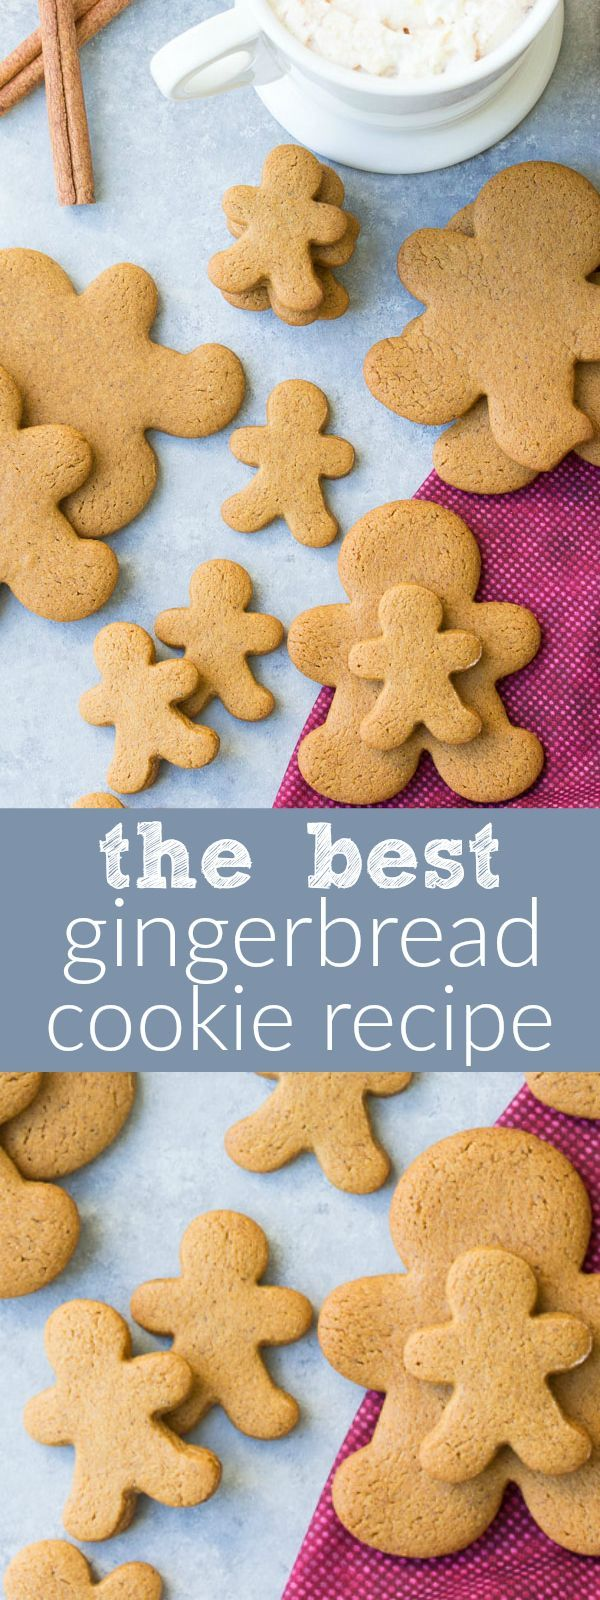 Our FAVORITE gingerbread cookie recipe! Perfectly spiced, soft cookies made with whole wheat flour and less sugar so they're healthier. | http://www.kristineskitchenblog.com